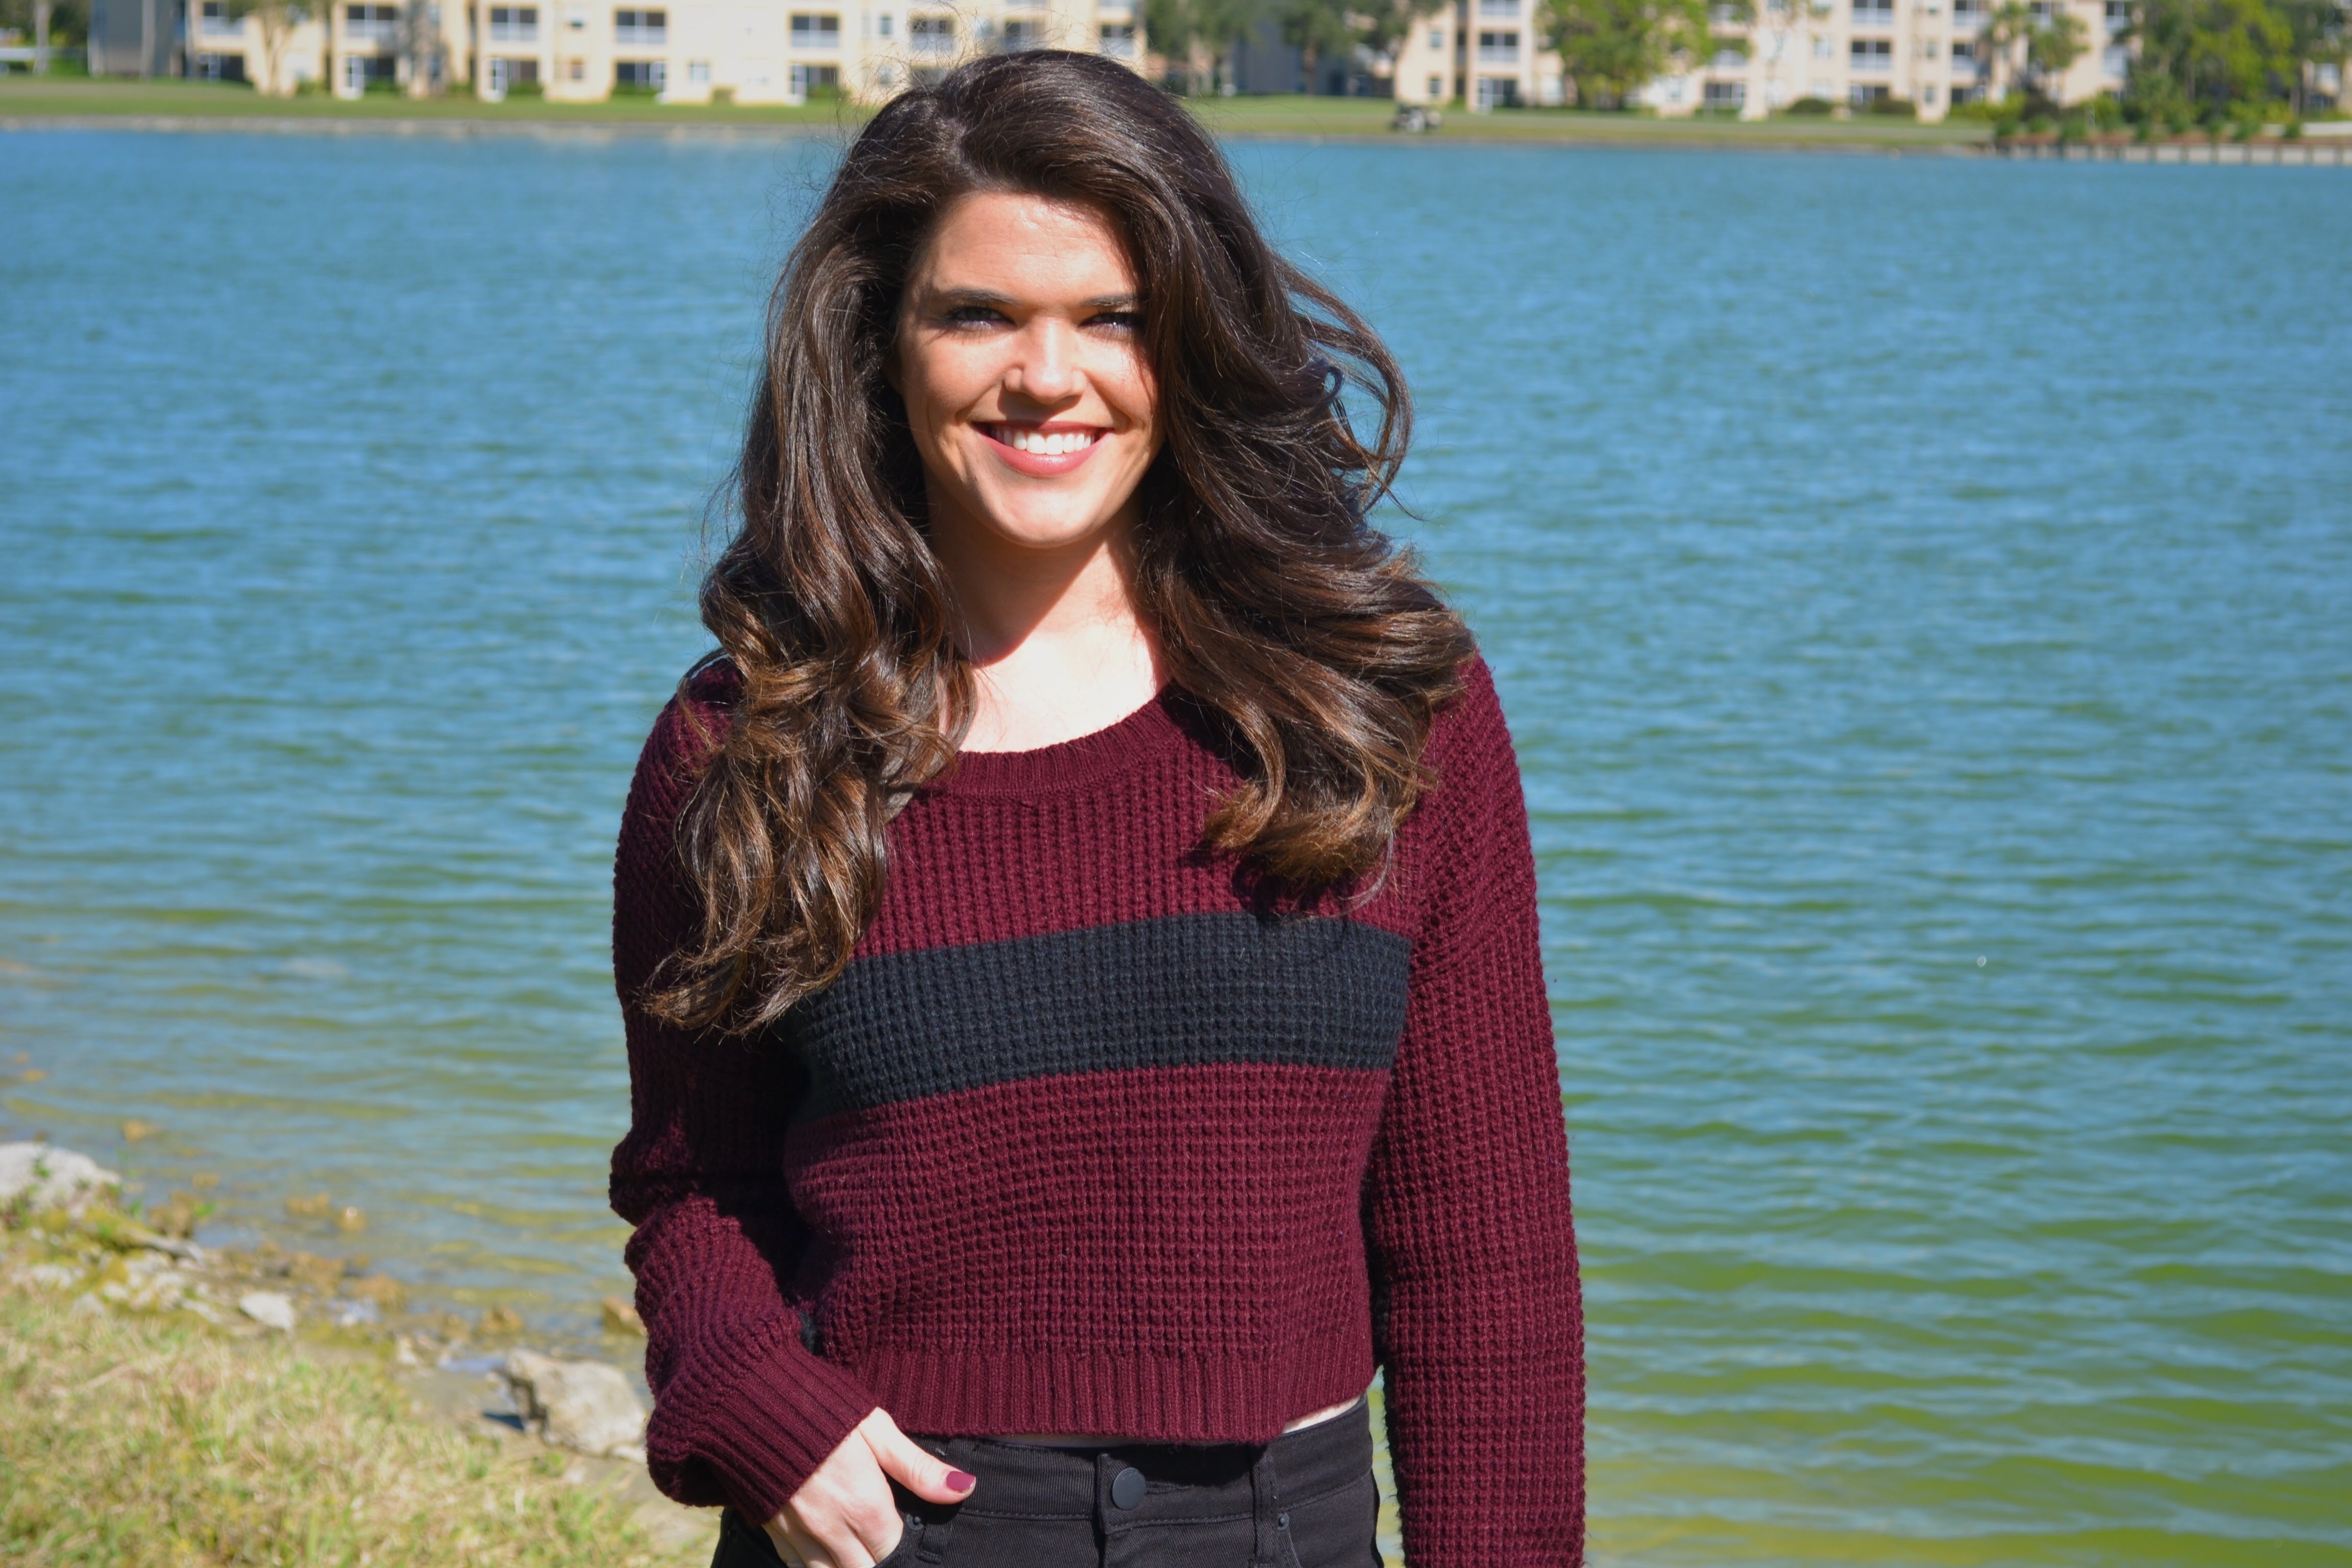 Winter to Spring Sweaters How to Make the Transition